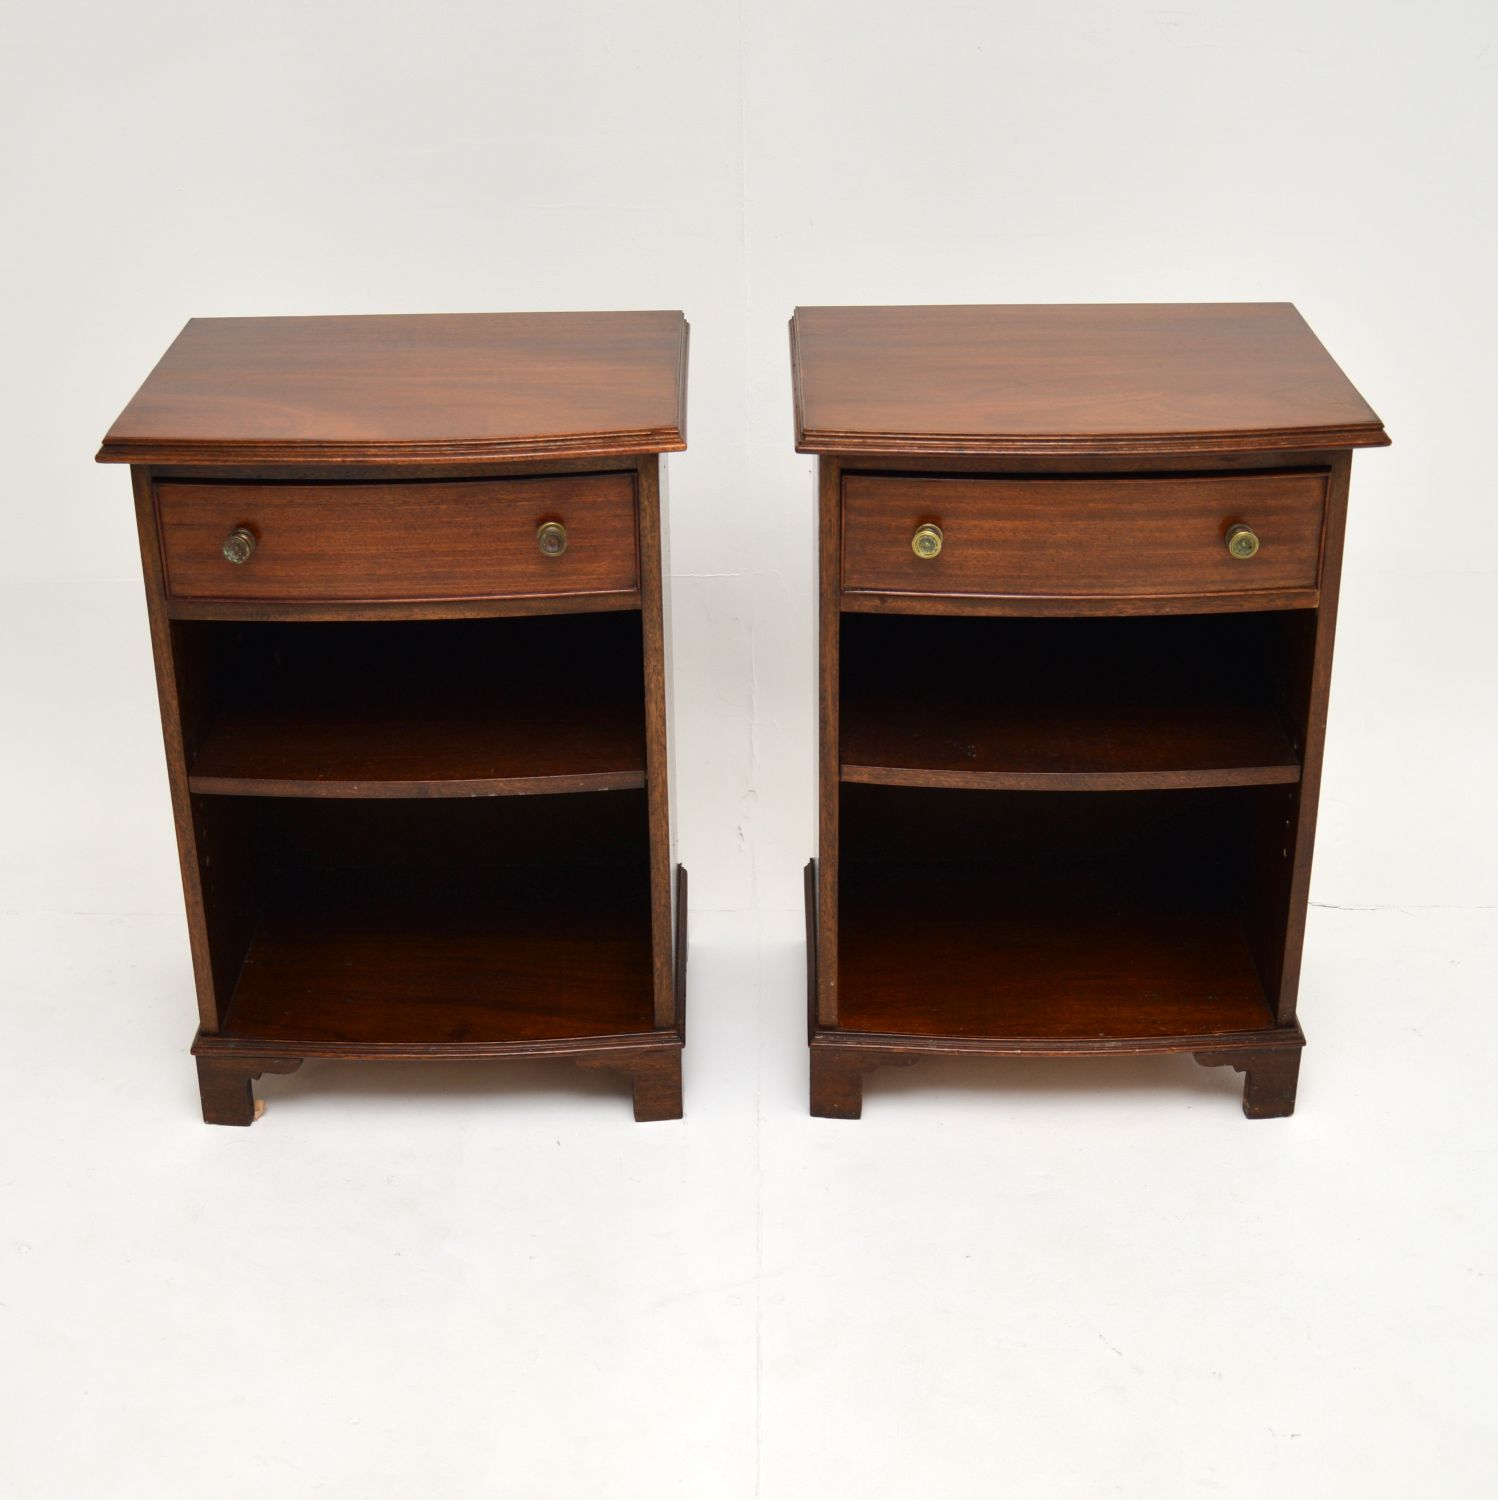 pair of antique edwardian mahogany bow front bedside cabinets